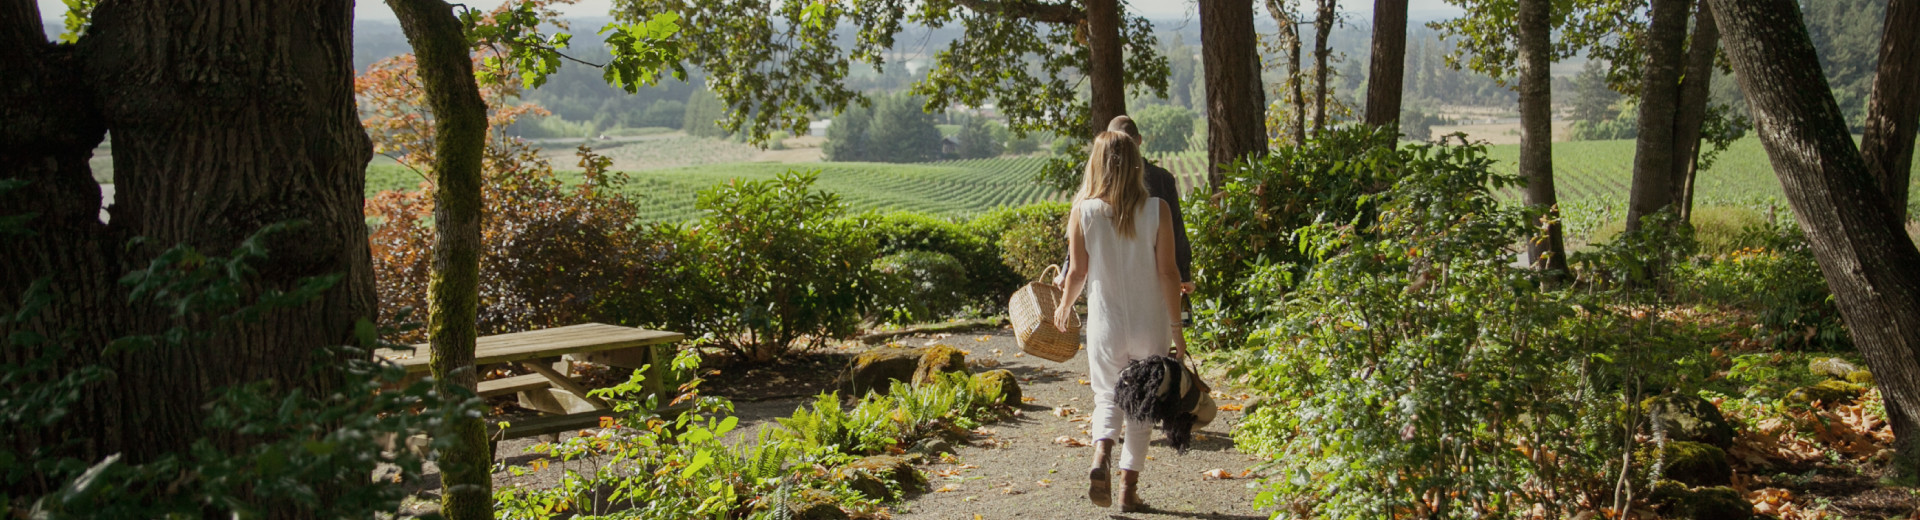 Atticus Hotel guests enjoy a vineyard picnic in Oregon's Willamette Valley